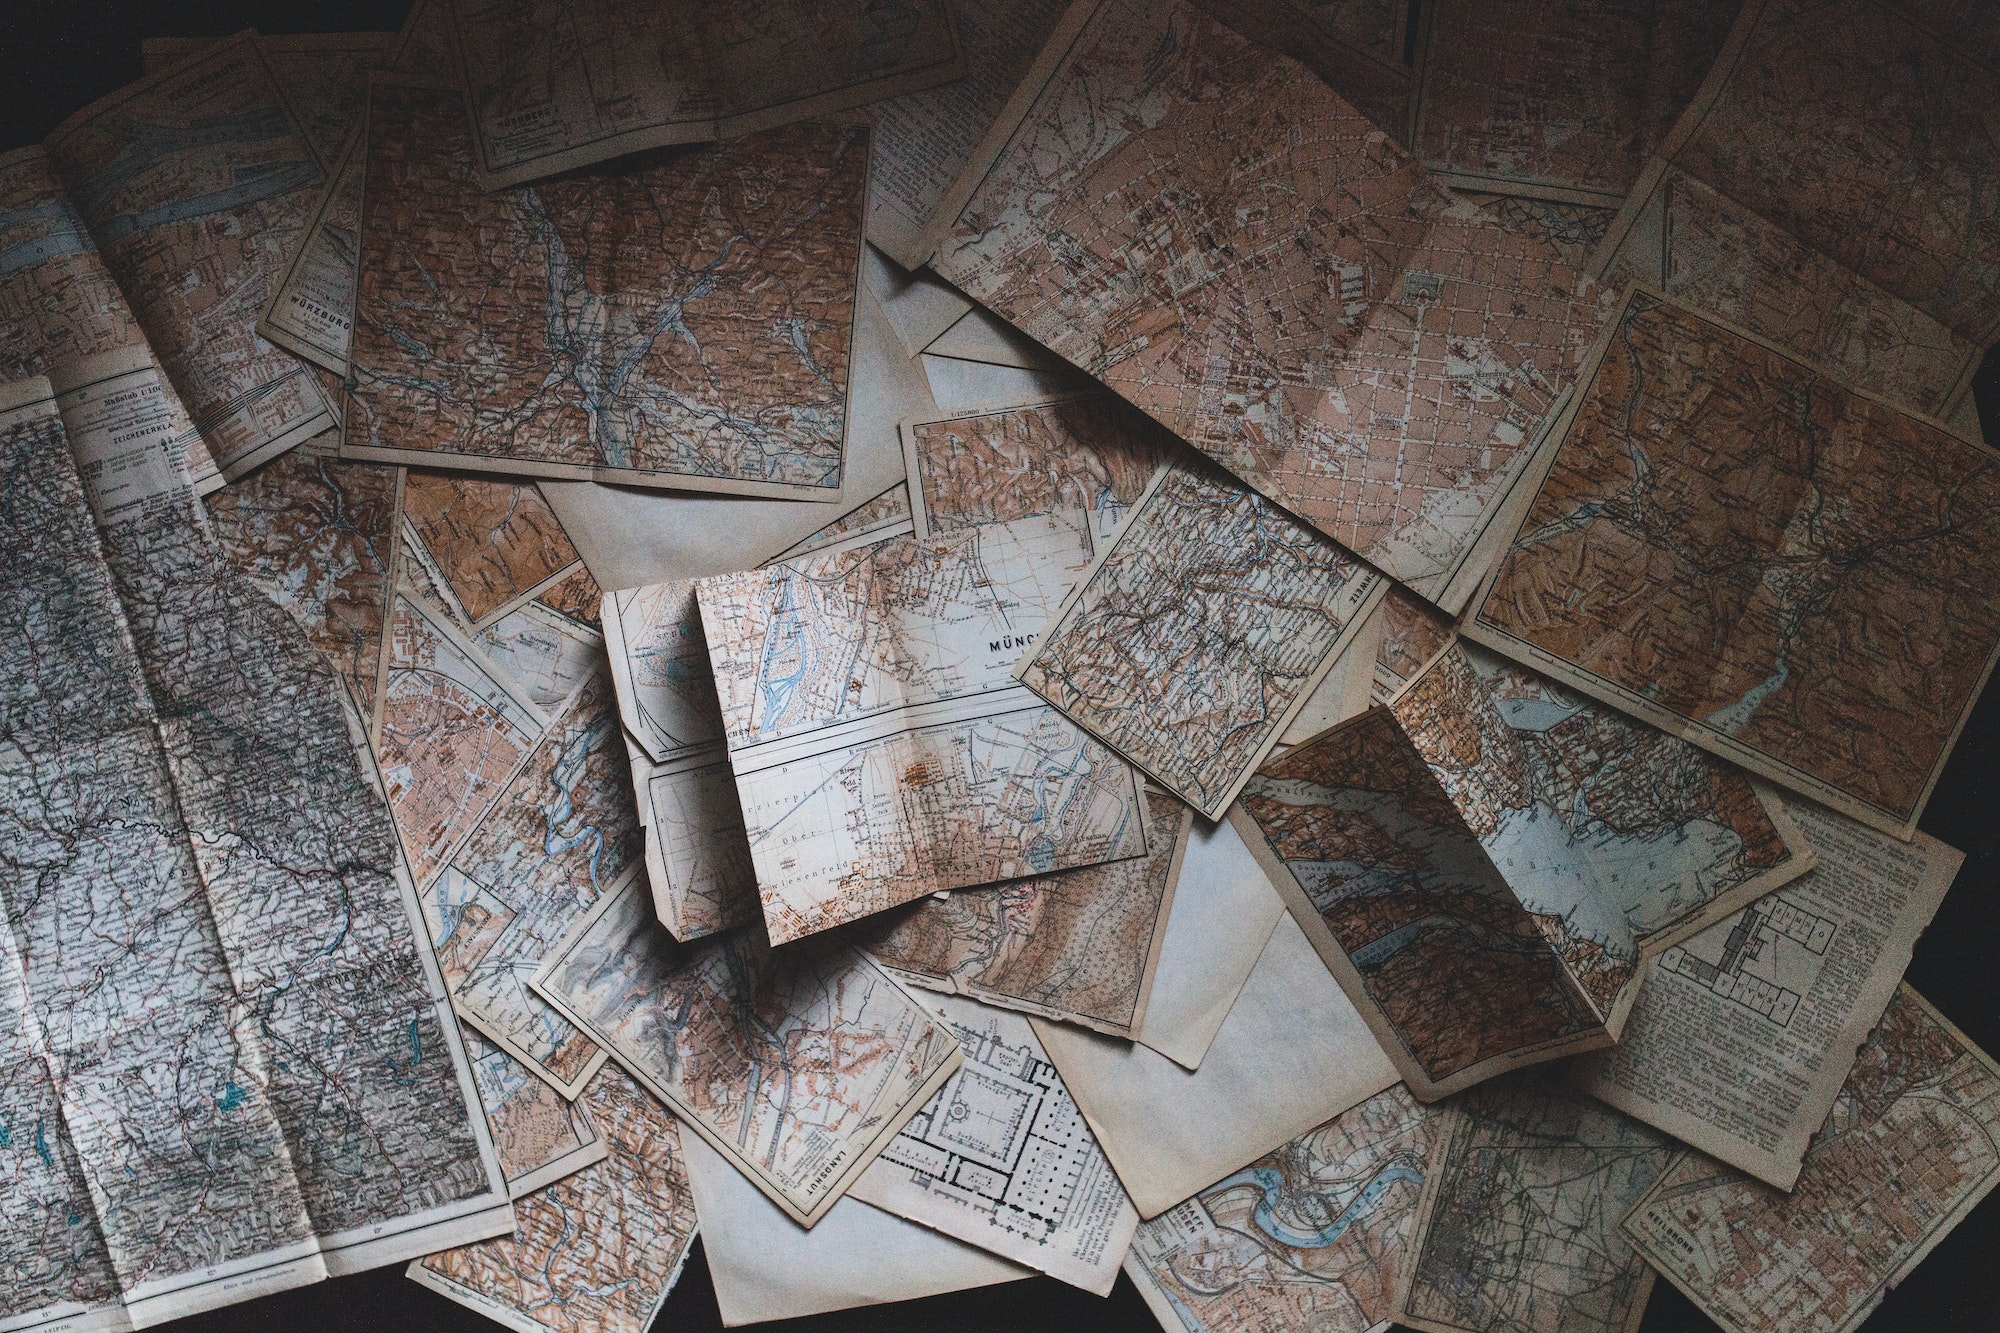 Maps haphazardly placed on a table.